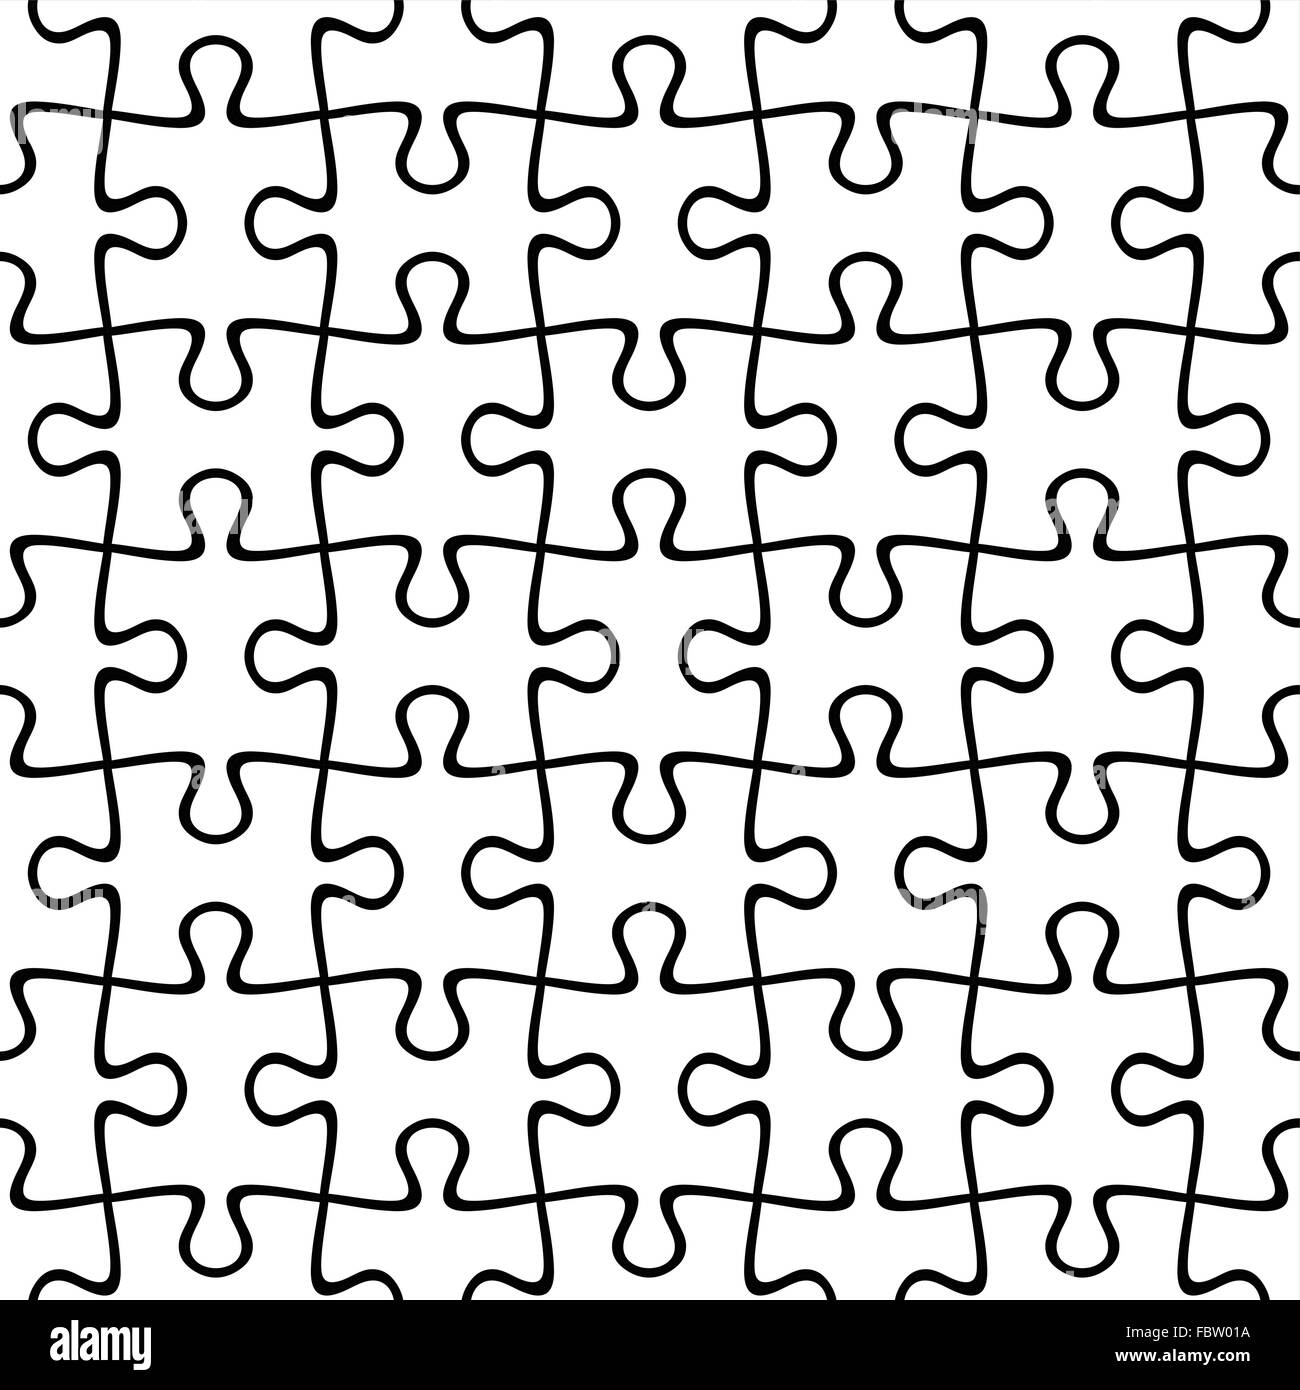 Jigsaw puzzle seamless background. Vector illustration. Stock Vector